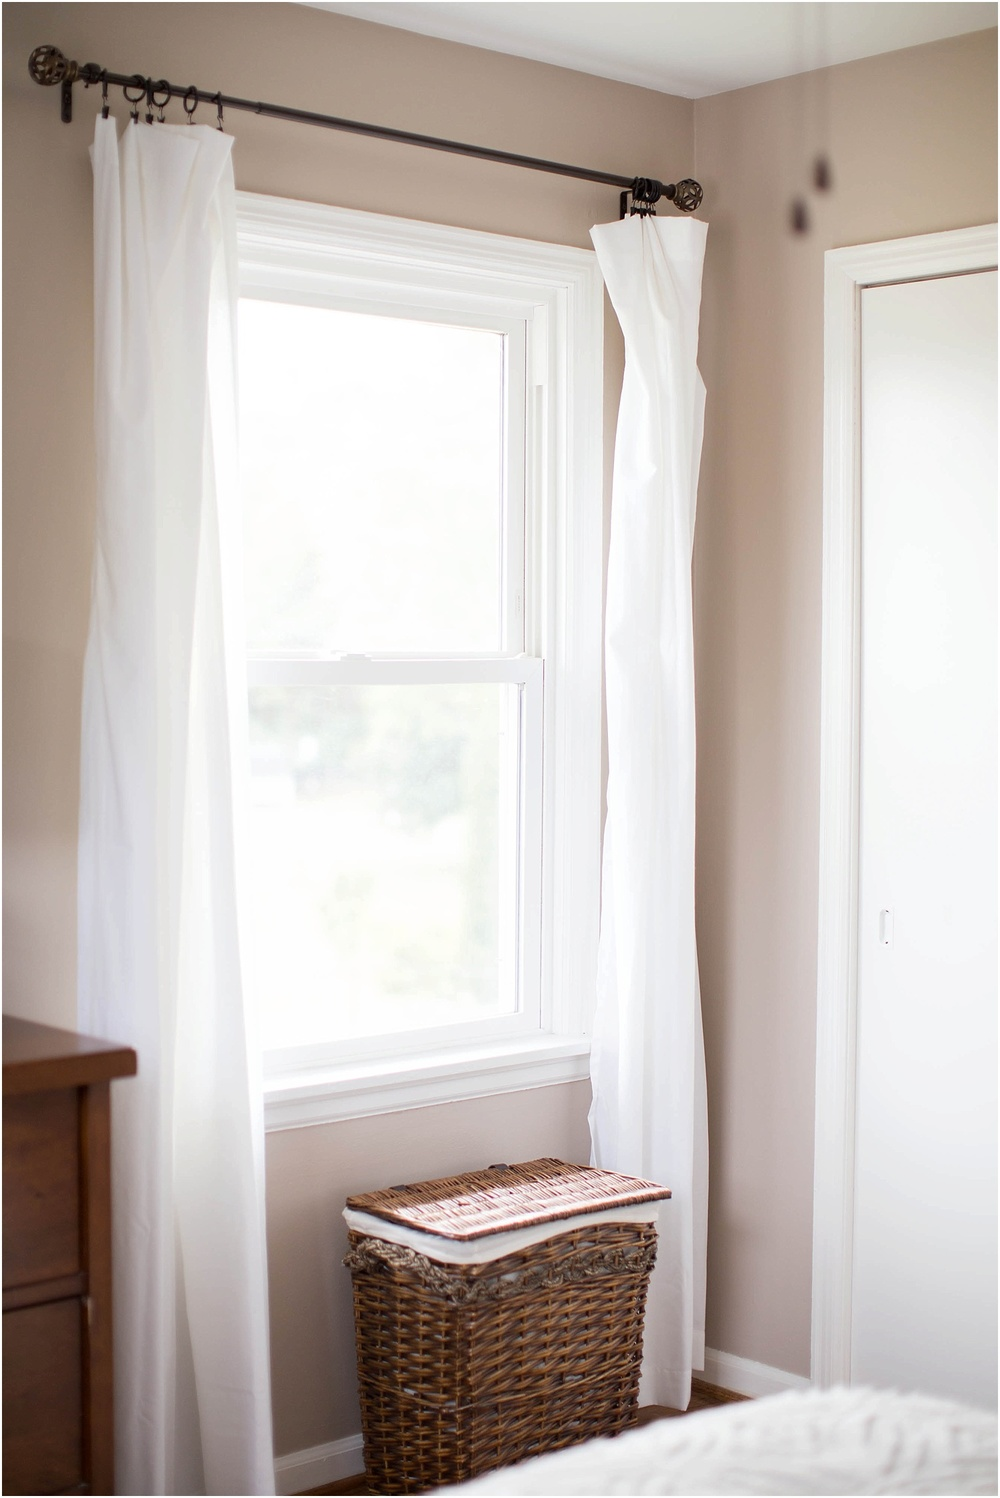 Bedroom Makeover | Ashley Powell Photography | Roanoke, Virginia